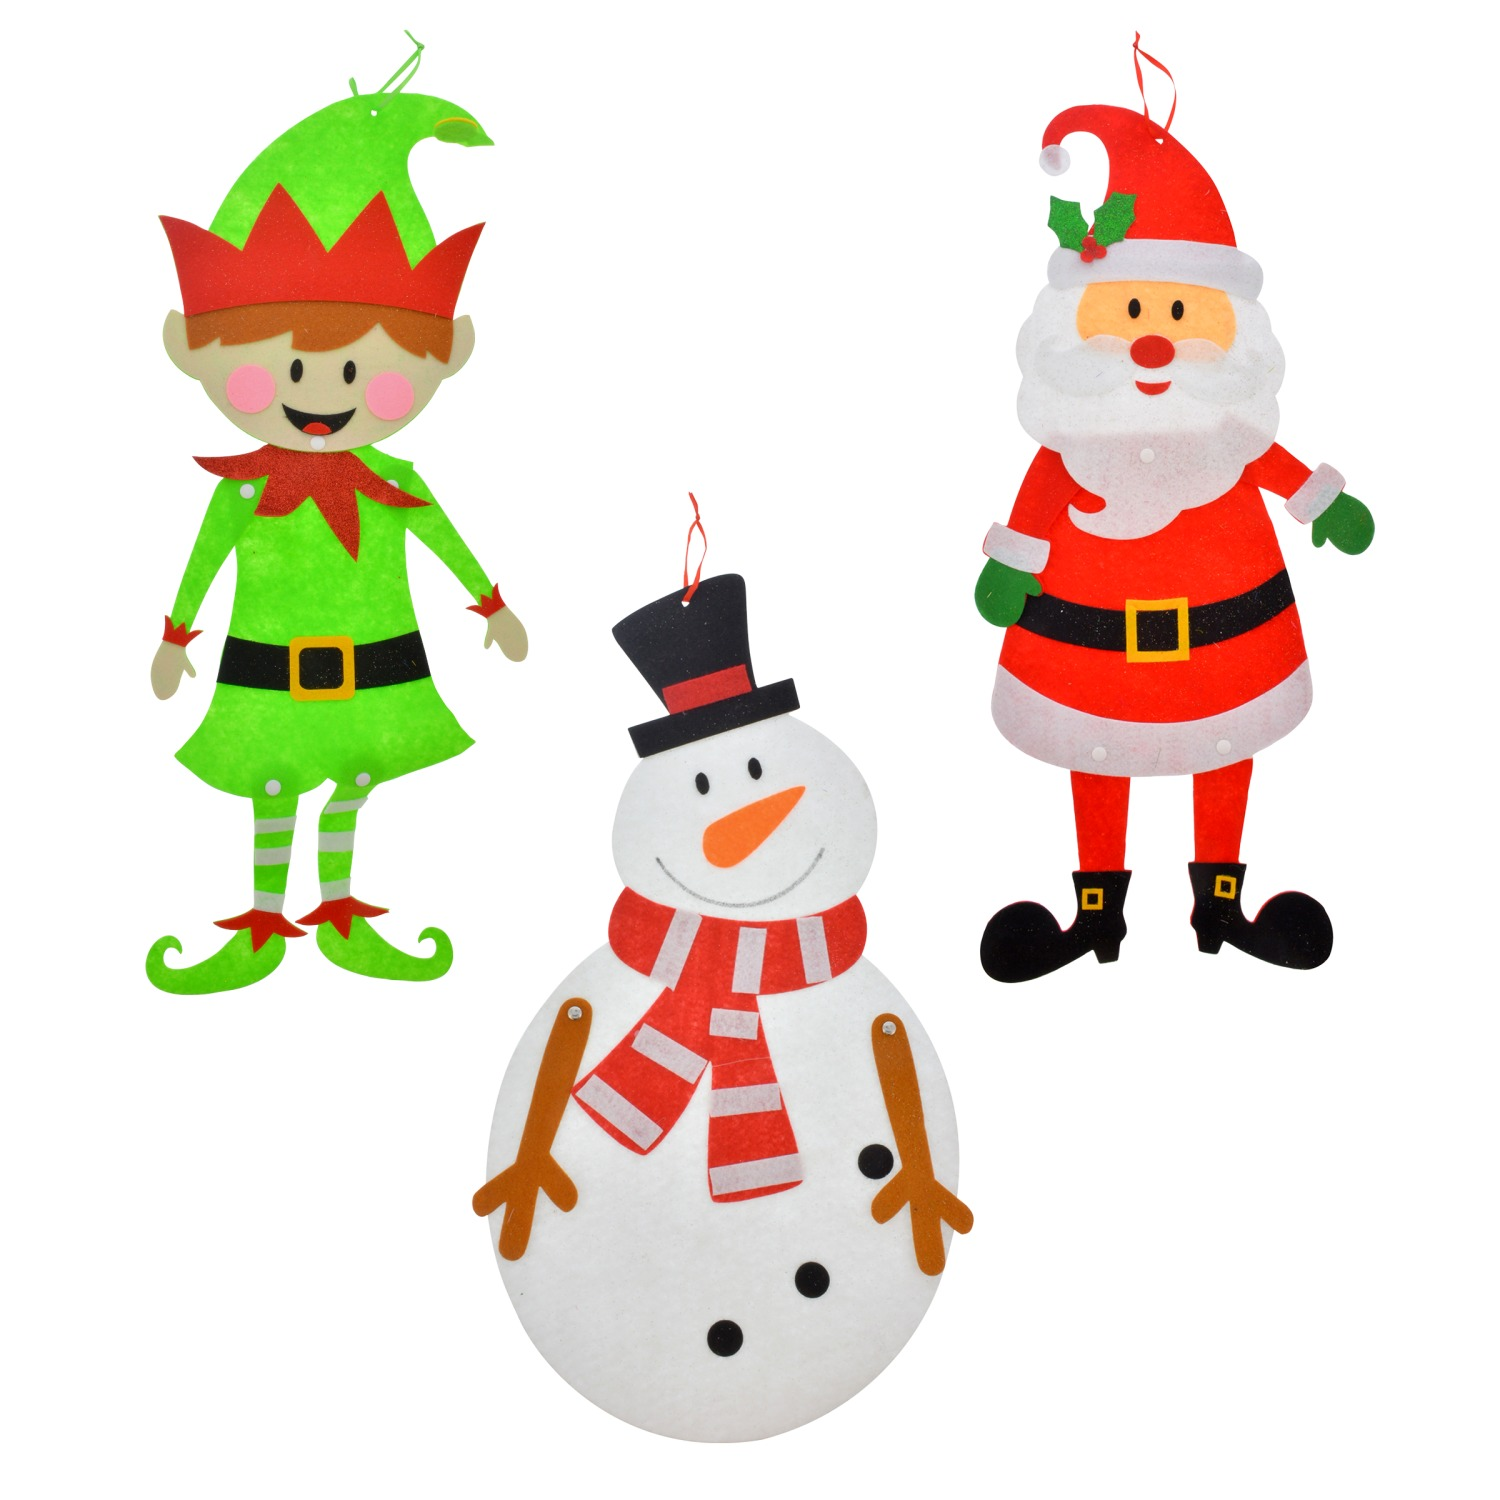 Christmas is Coming…Crafts, Recipes, Gifts, Oh My! #DollarTree